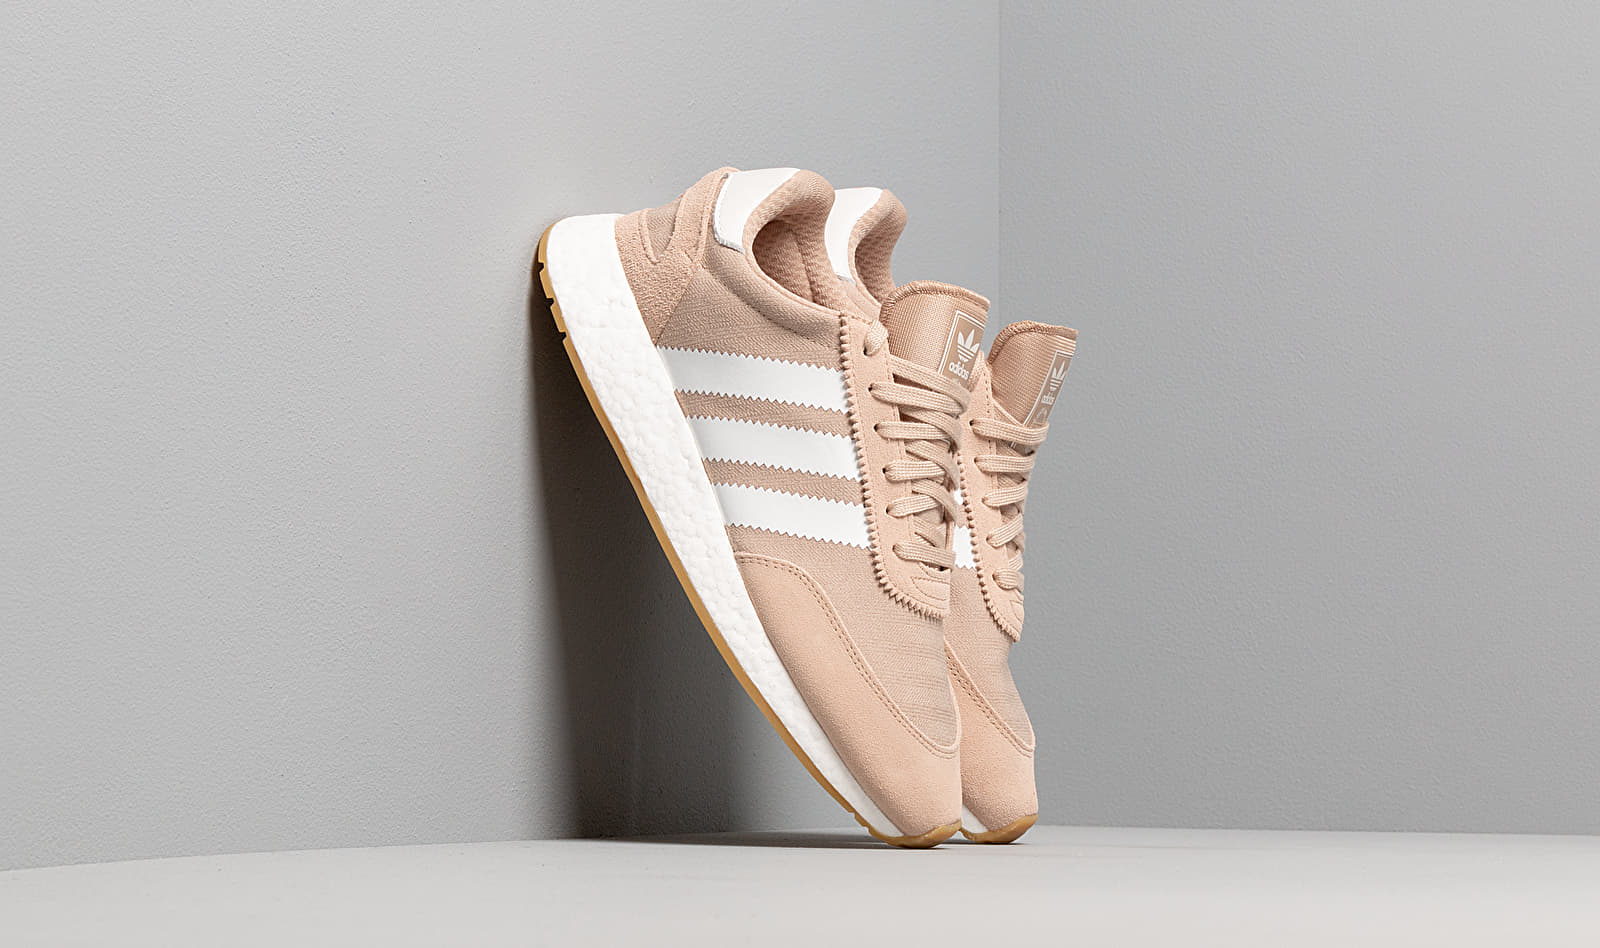 adidas I-5923 St Pale Nude/ Crystal White/ Ftw White EE4937